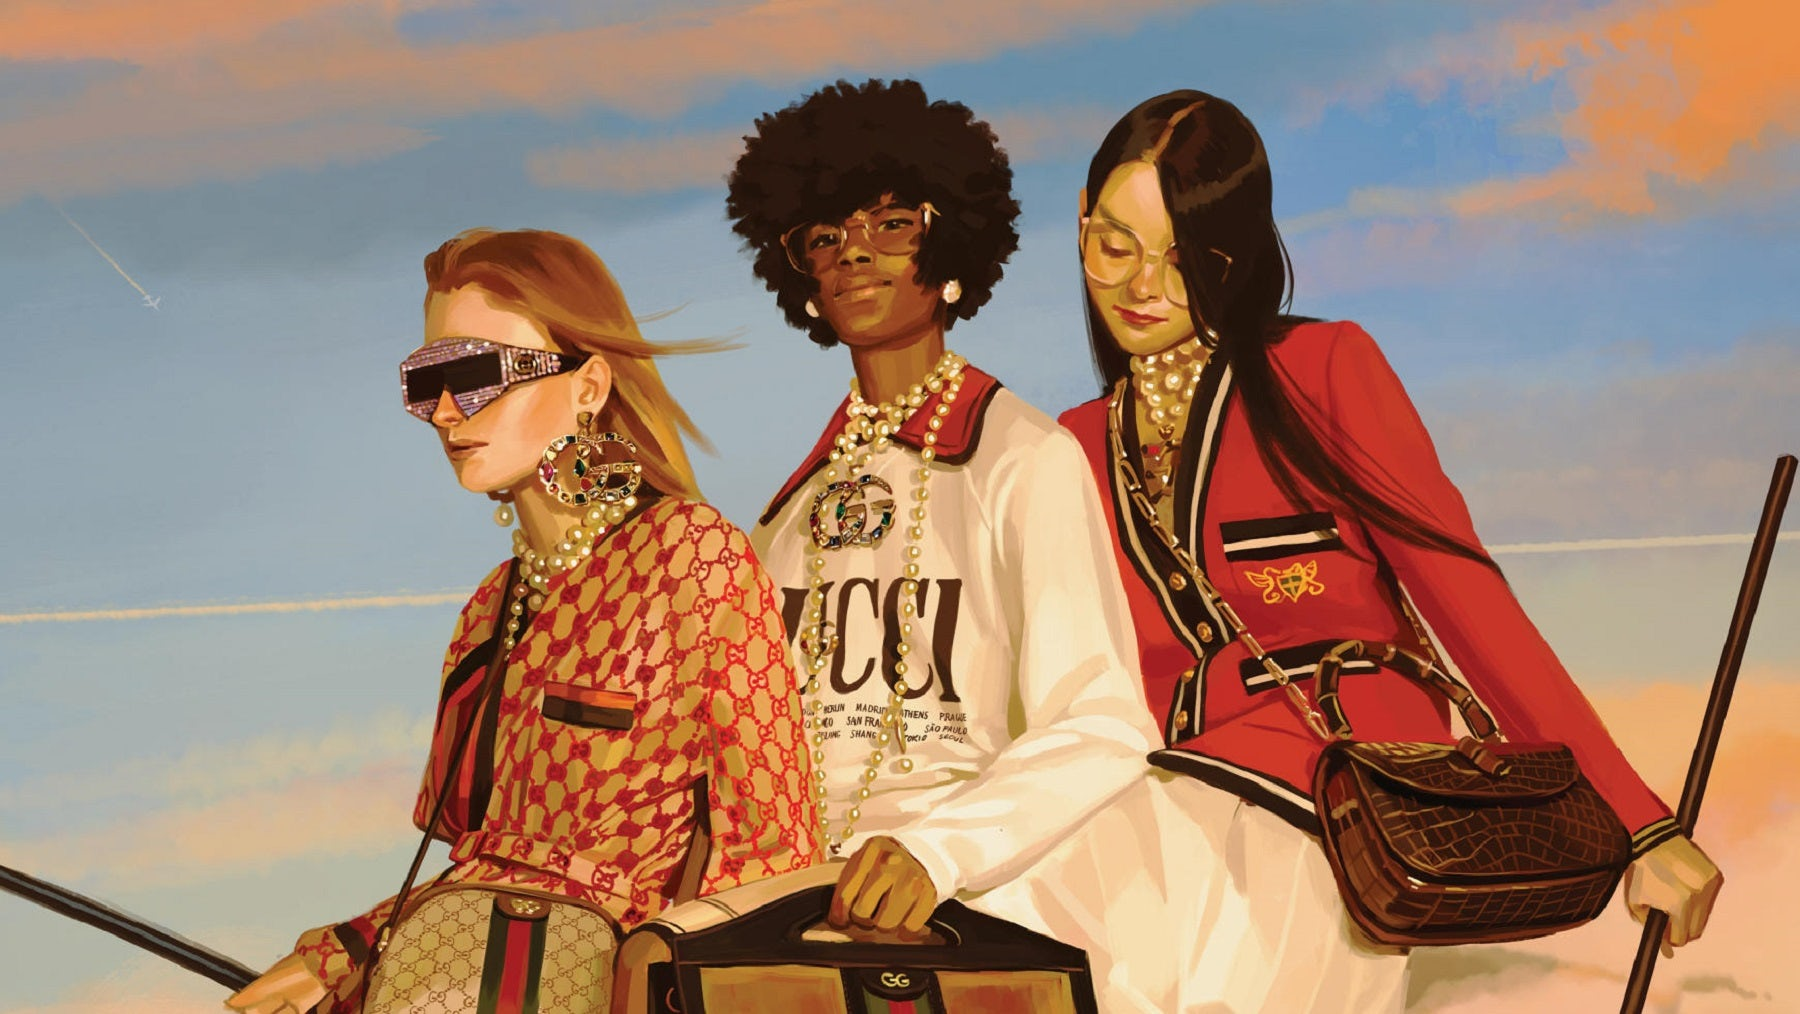 Article cover of Gucci Boosts Kering's Fourth-Quarter Sales Growth